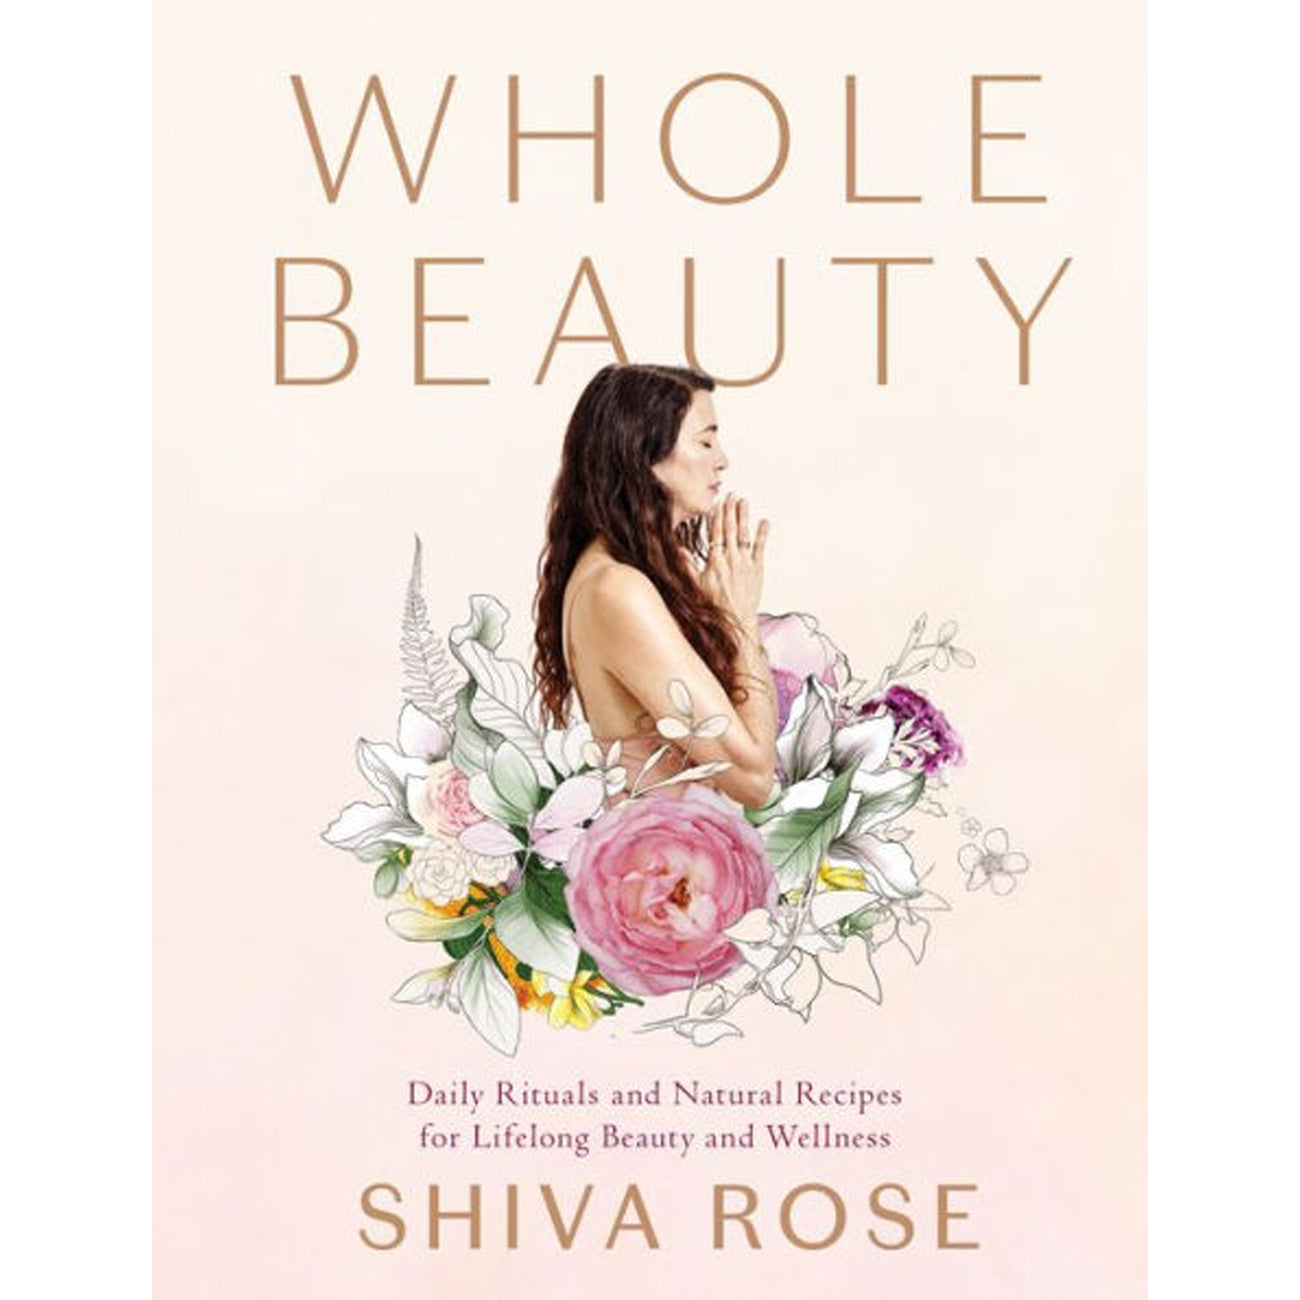 Whole Beauty by Shiva Rose